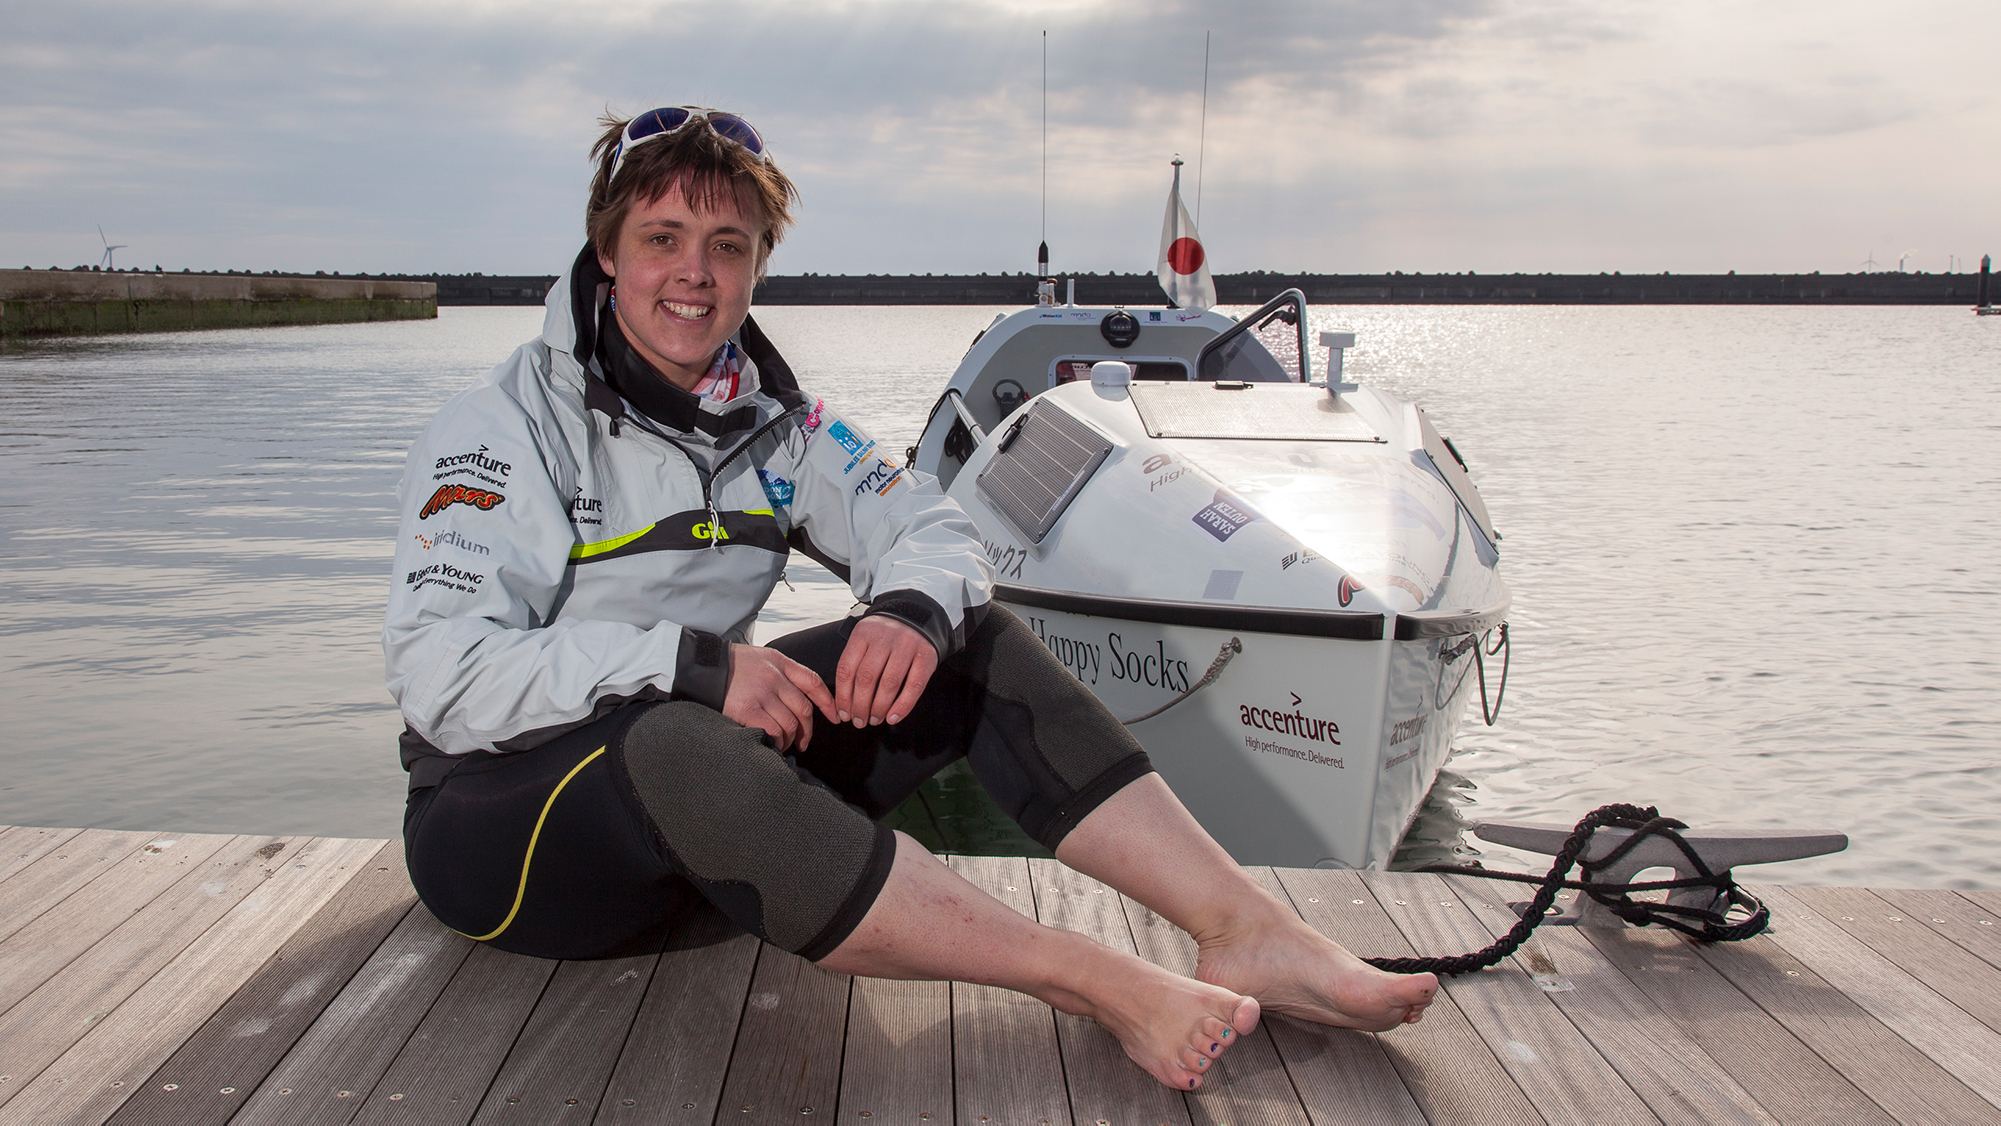 Sarah Outen sits on dock in front of kayak on the water